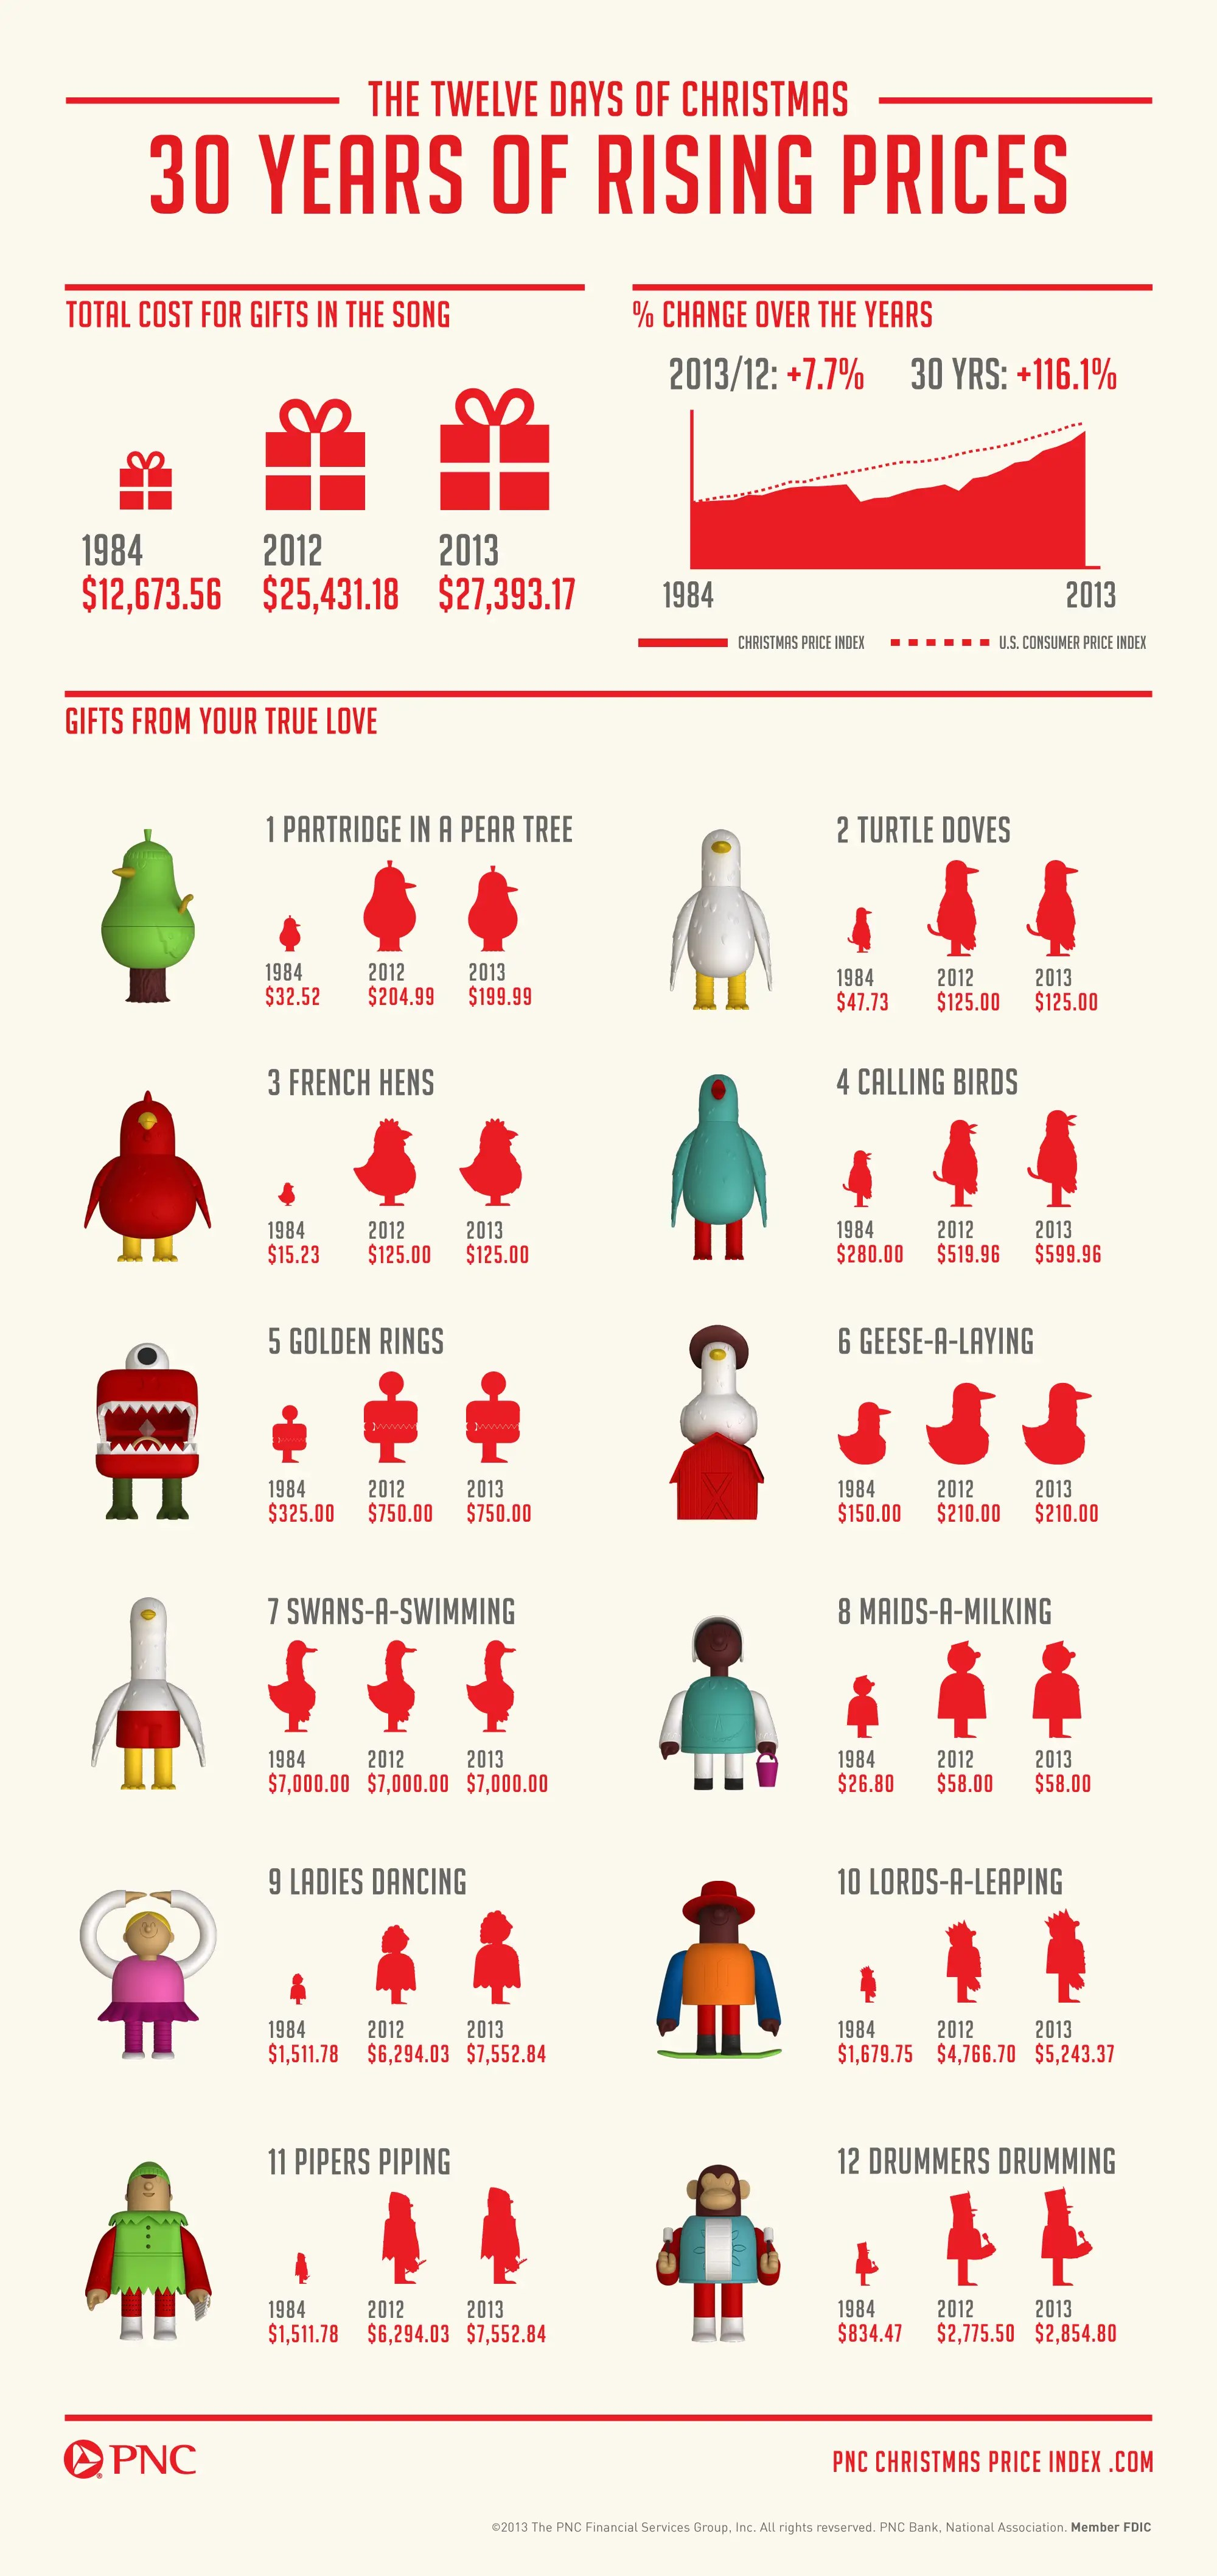 Here S What Everything In The 12 Days Of Christmas Song